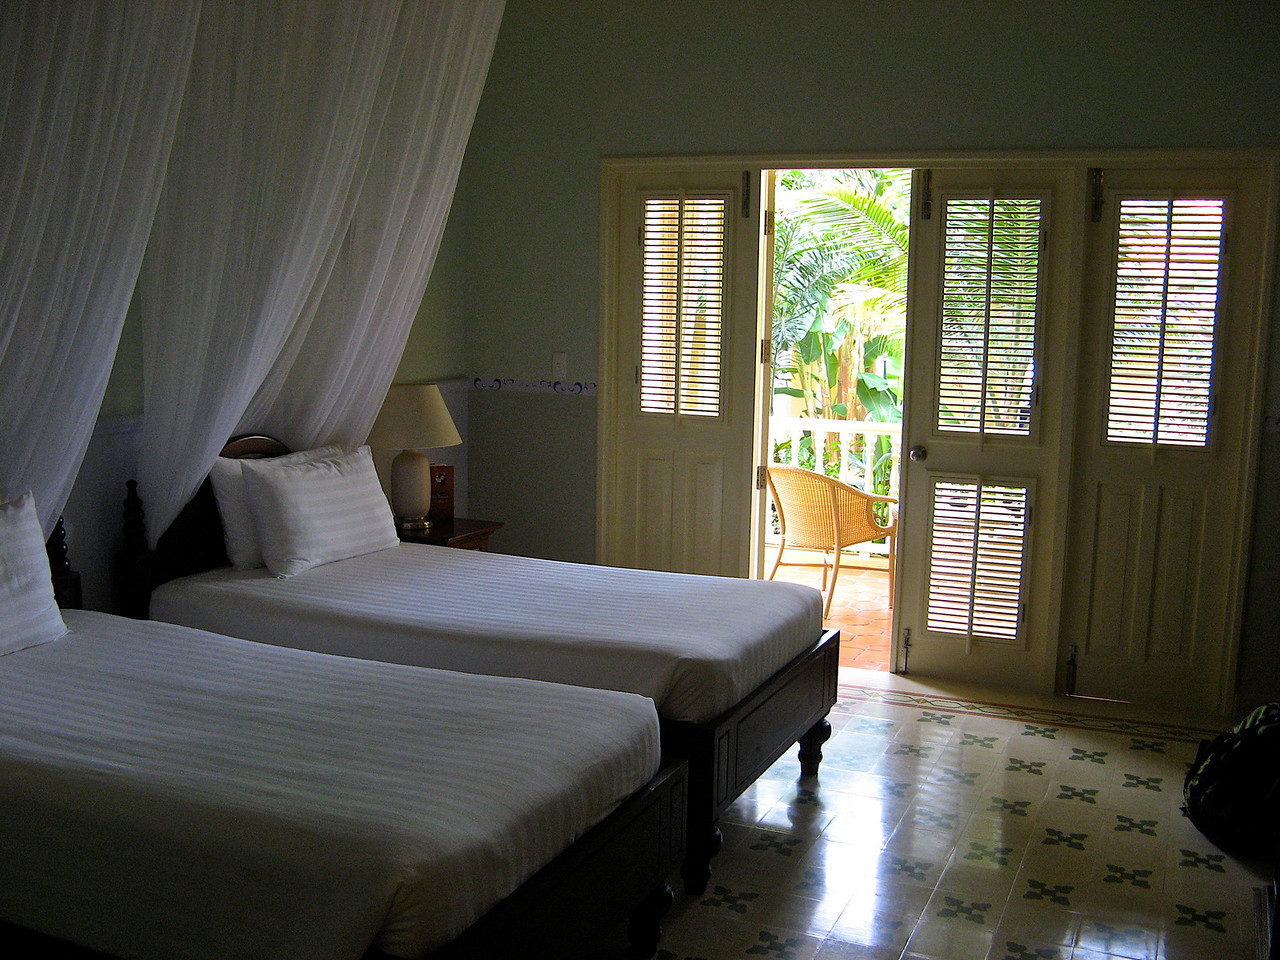 Rooms are very large and each have a small patio.